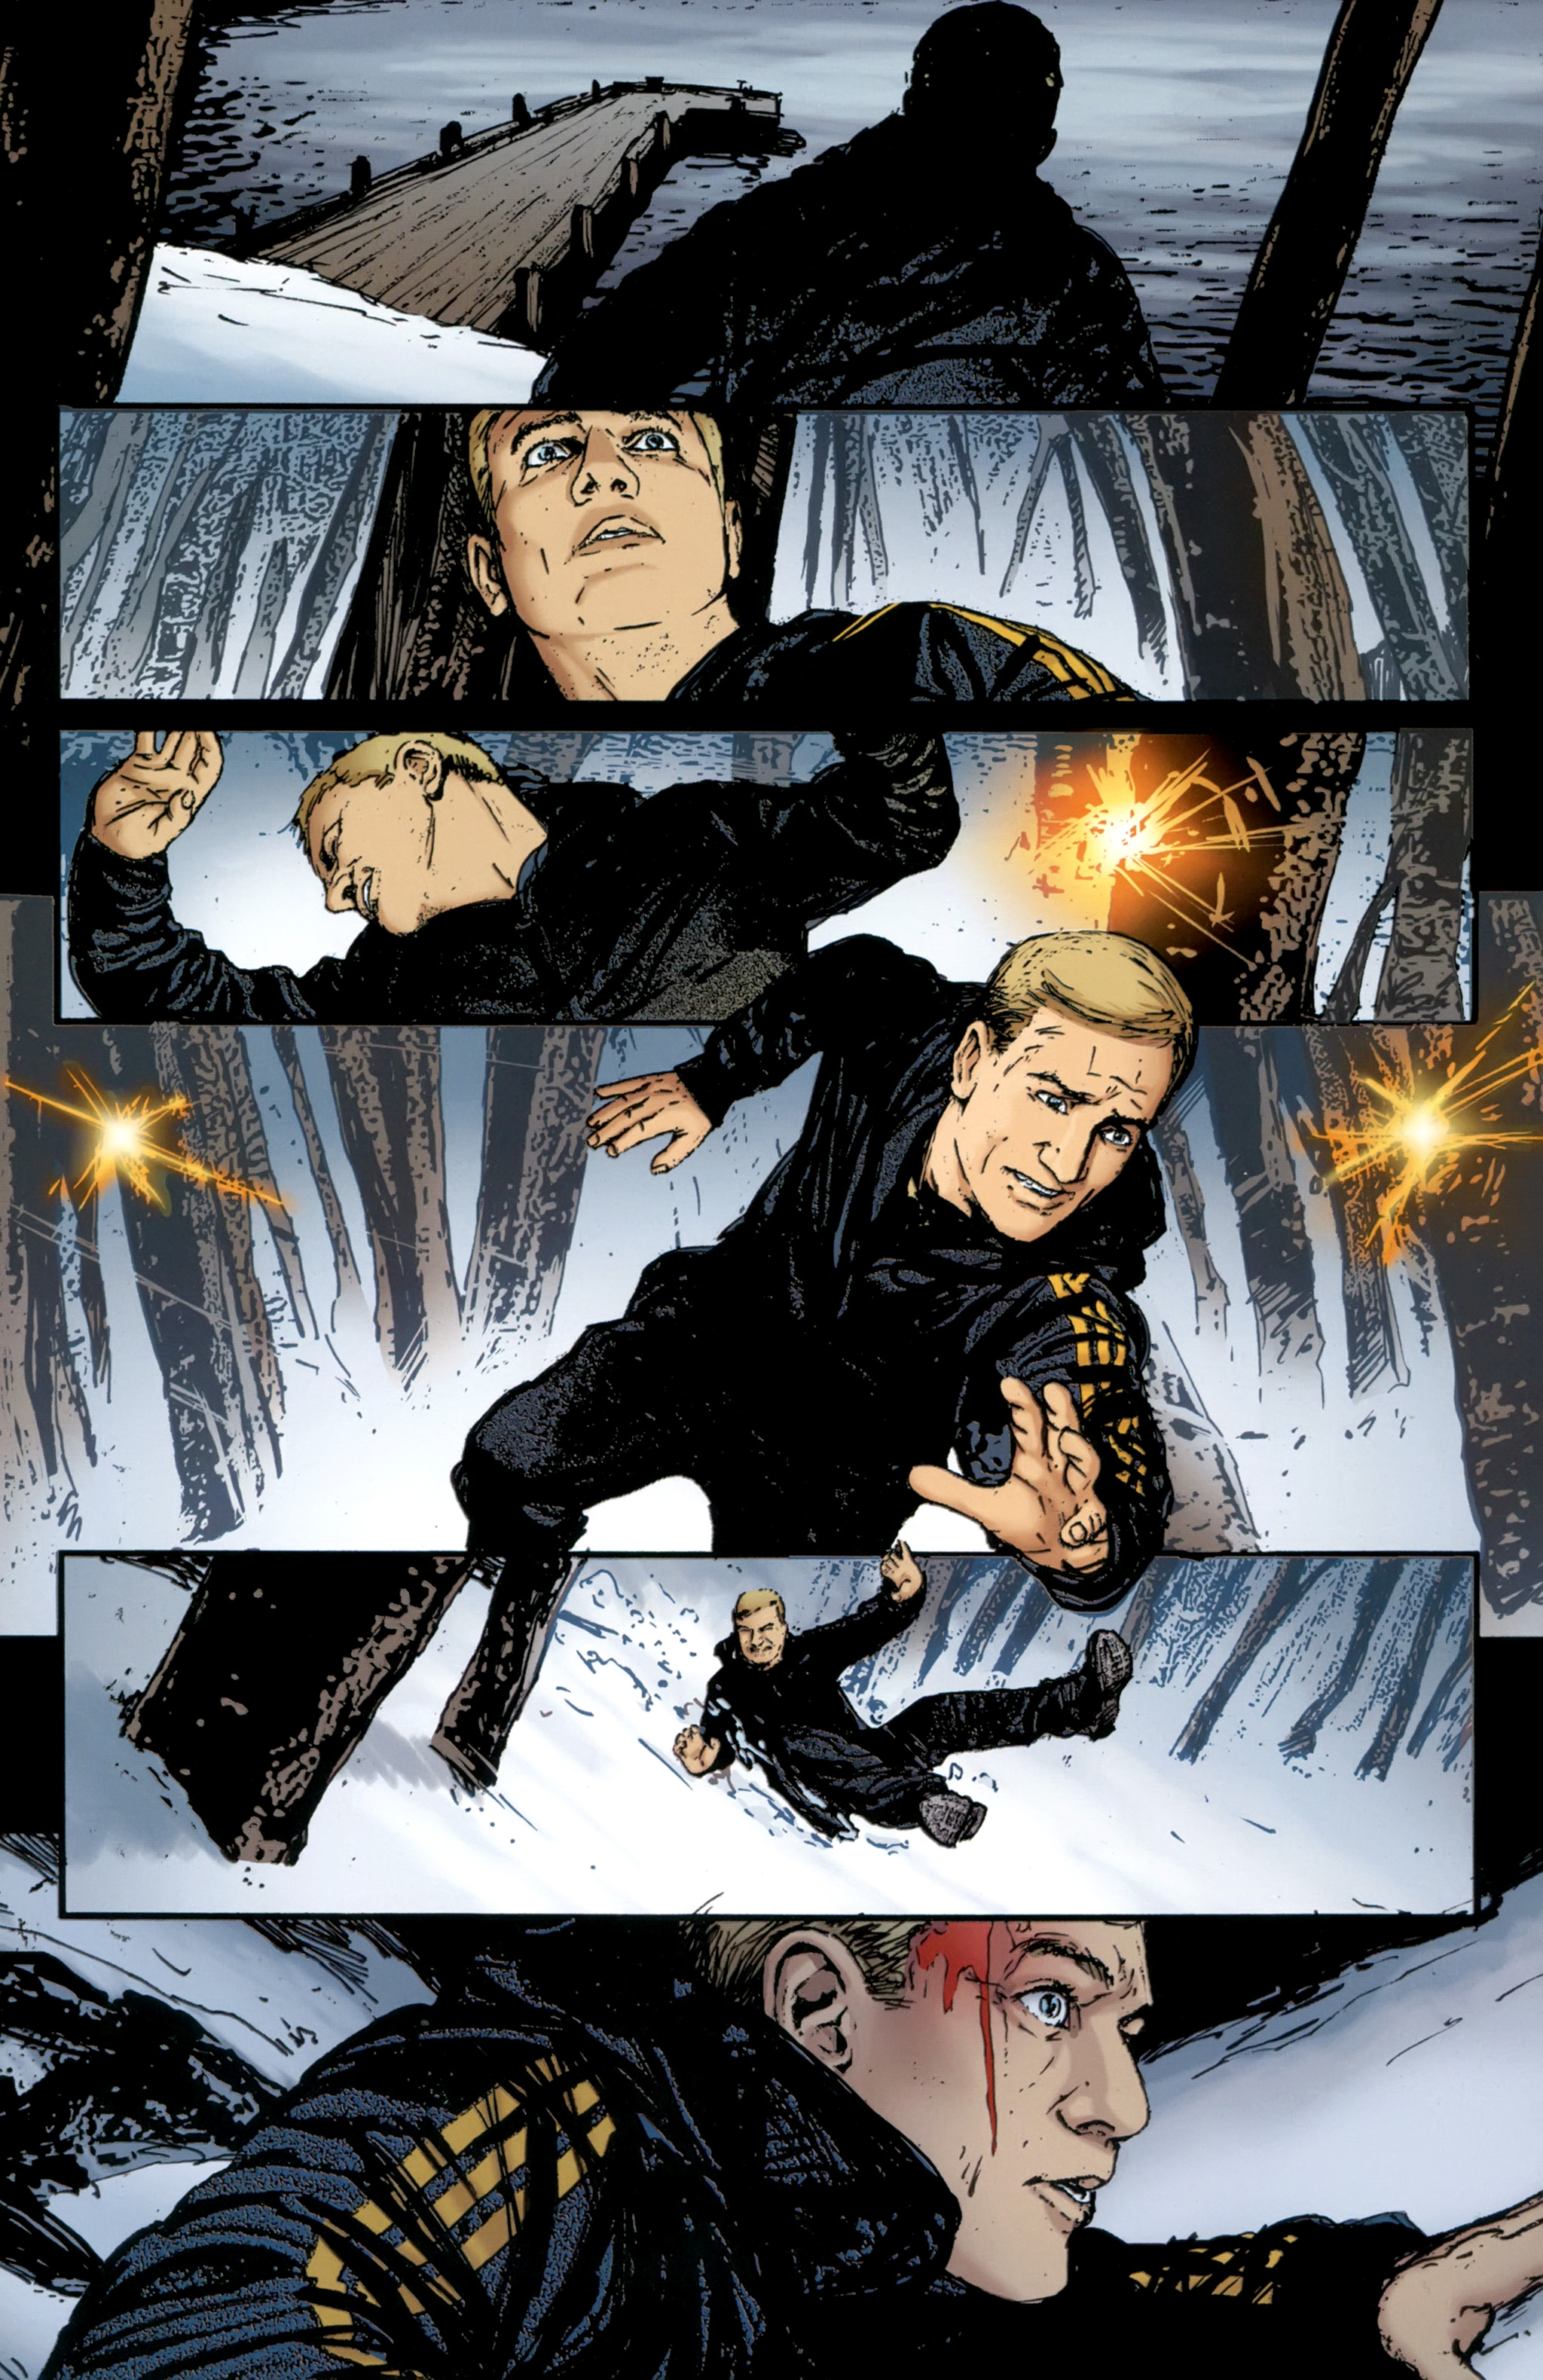 Read online The Girl With the Dragon Tattoo comic -  Issue # TPB 2 - 71